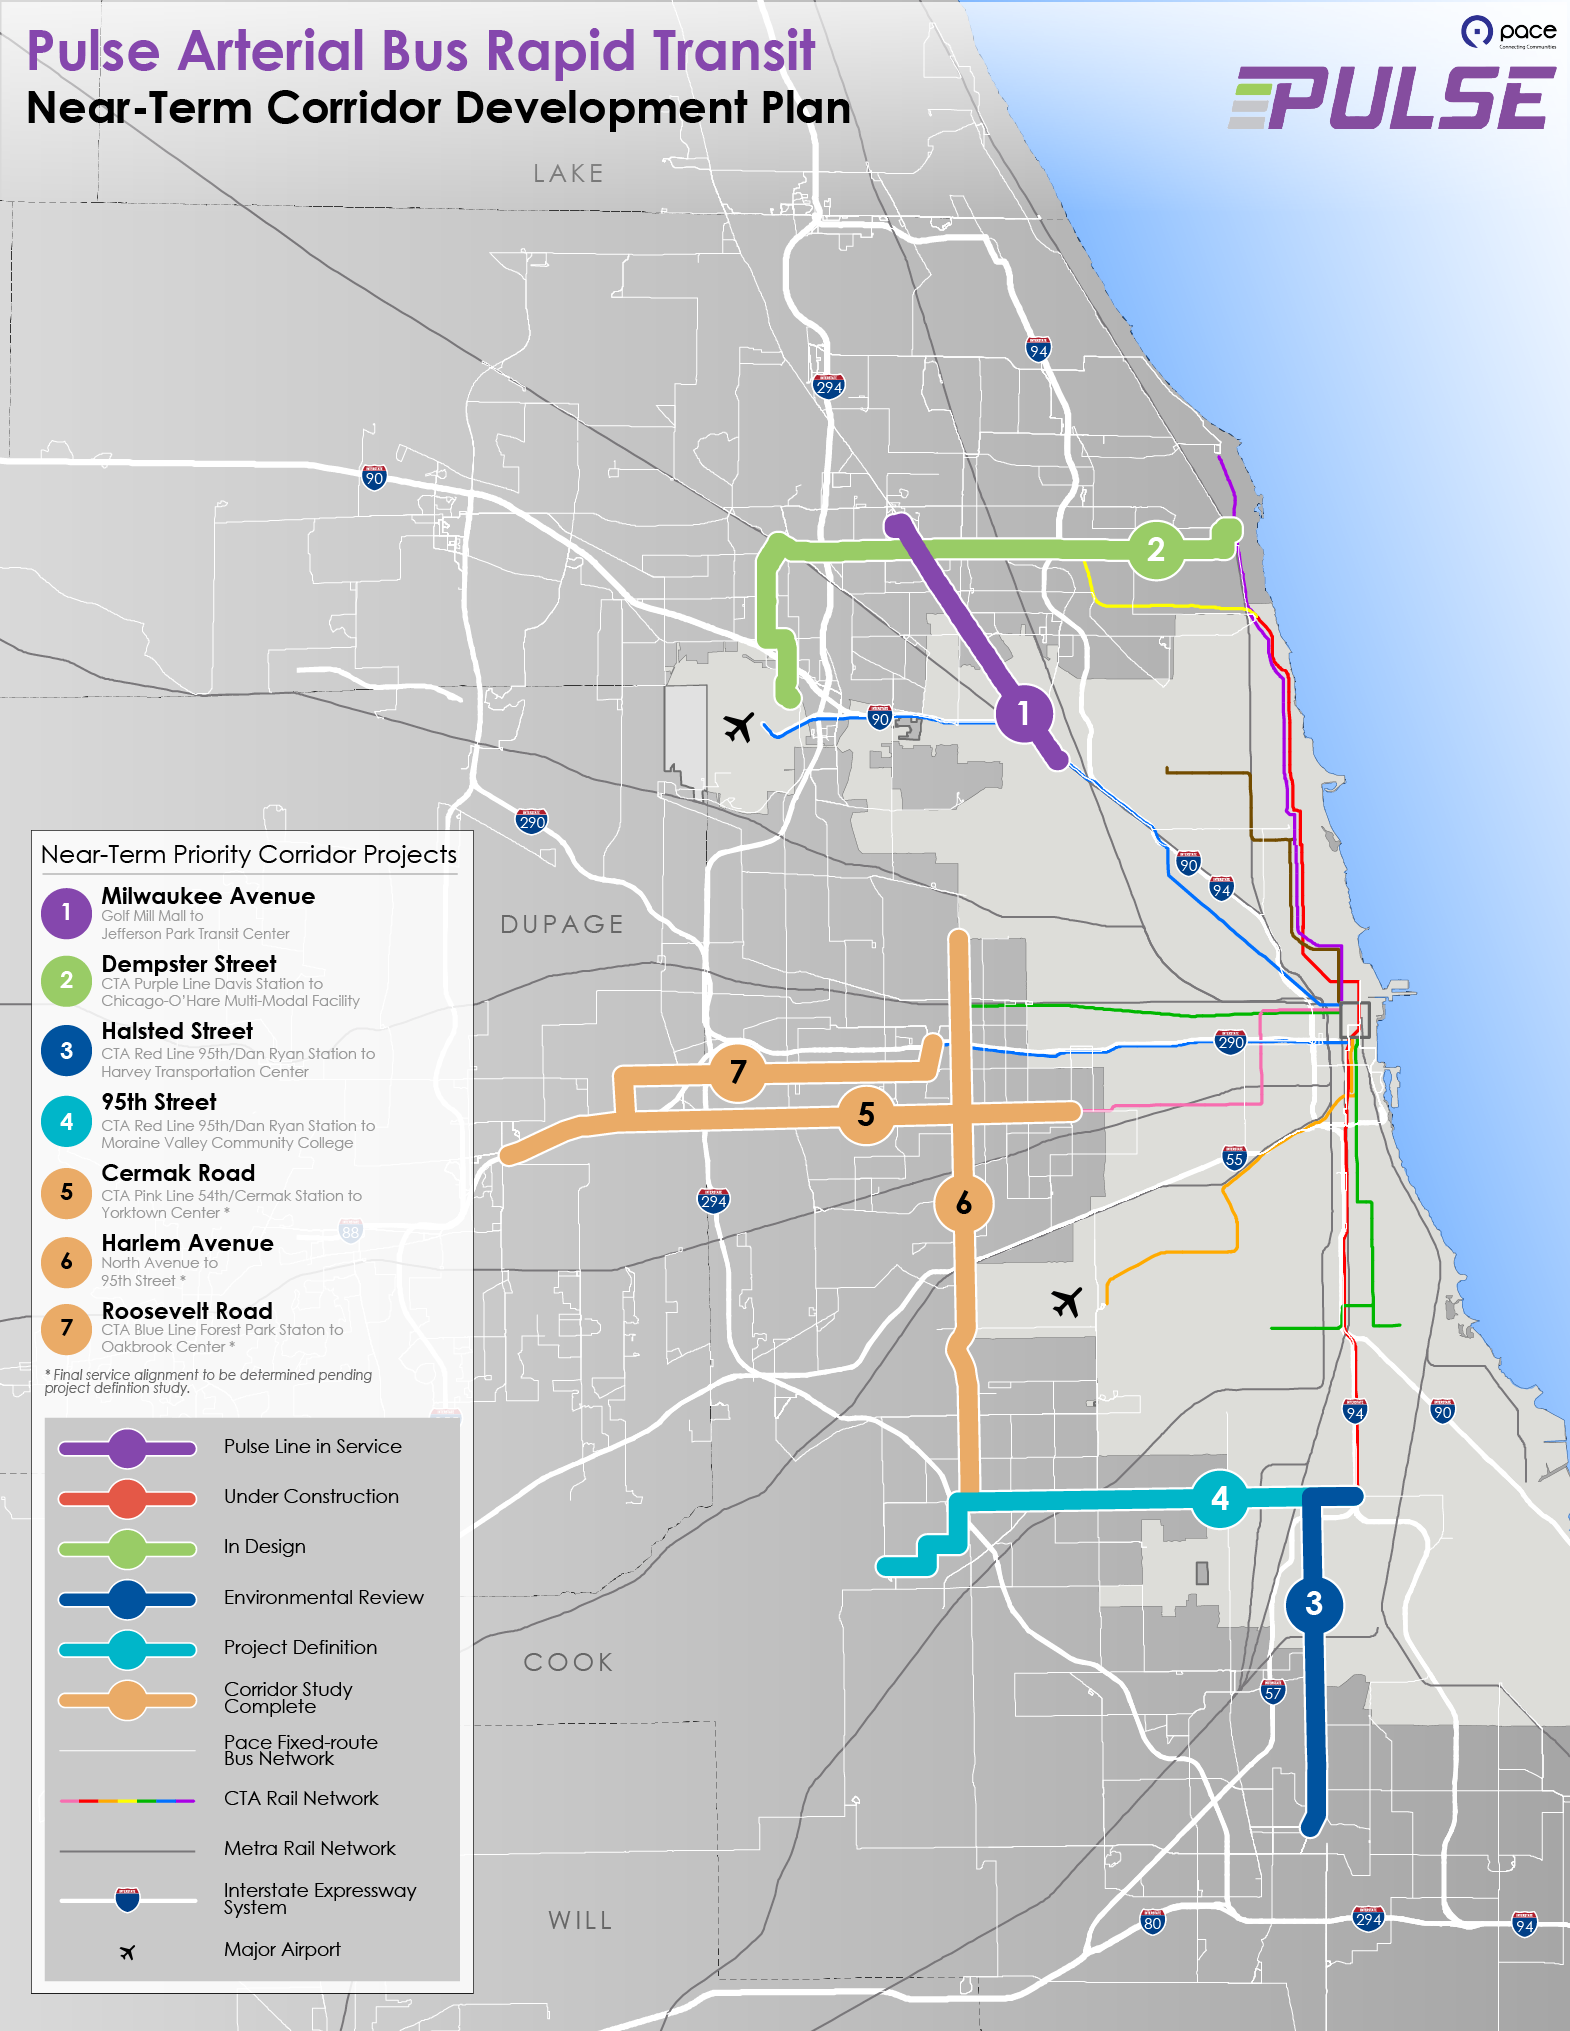 This is an image of Pulse routes proposed by Pace's Development Plan, which will be completed near term